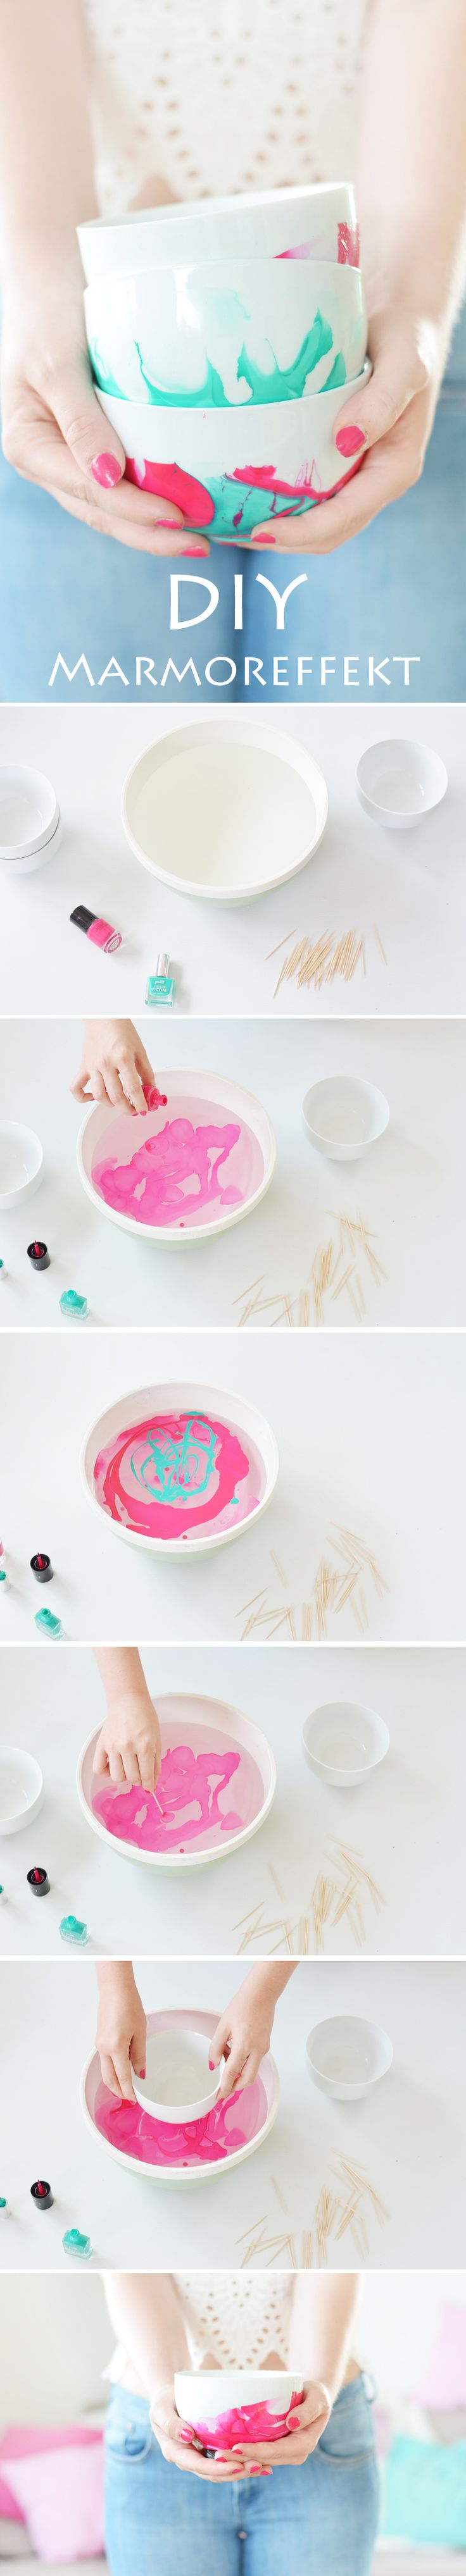 60 best DIY/Upcycling images on Pinterest | Creative ideas, Diy ...